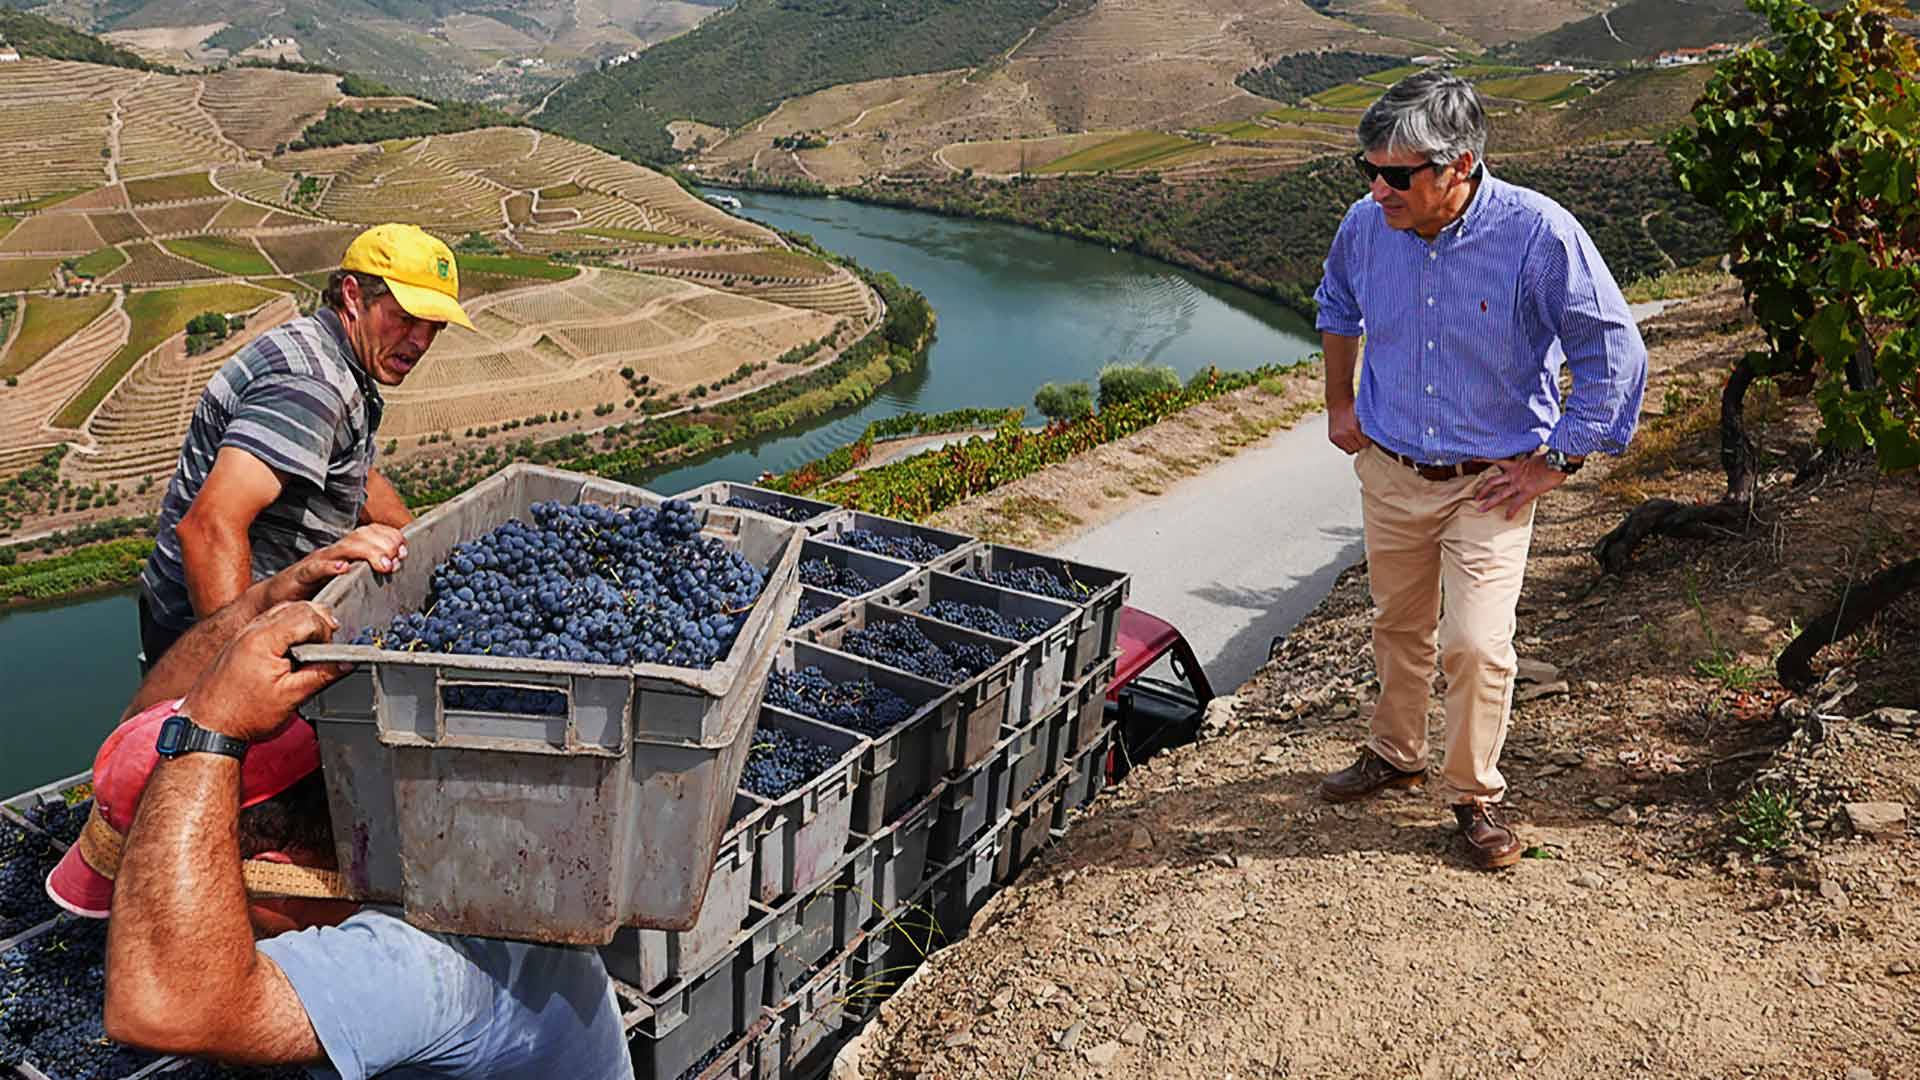 Harvesting the Grapes for Port wine